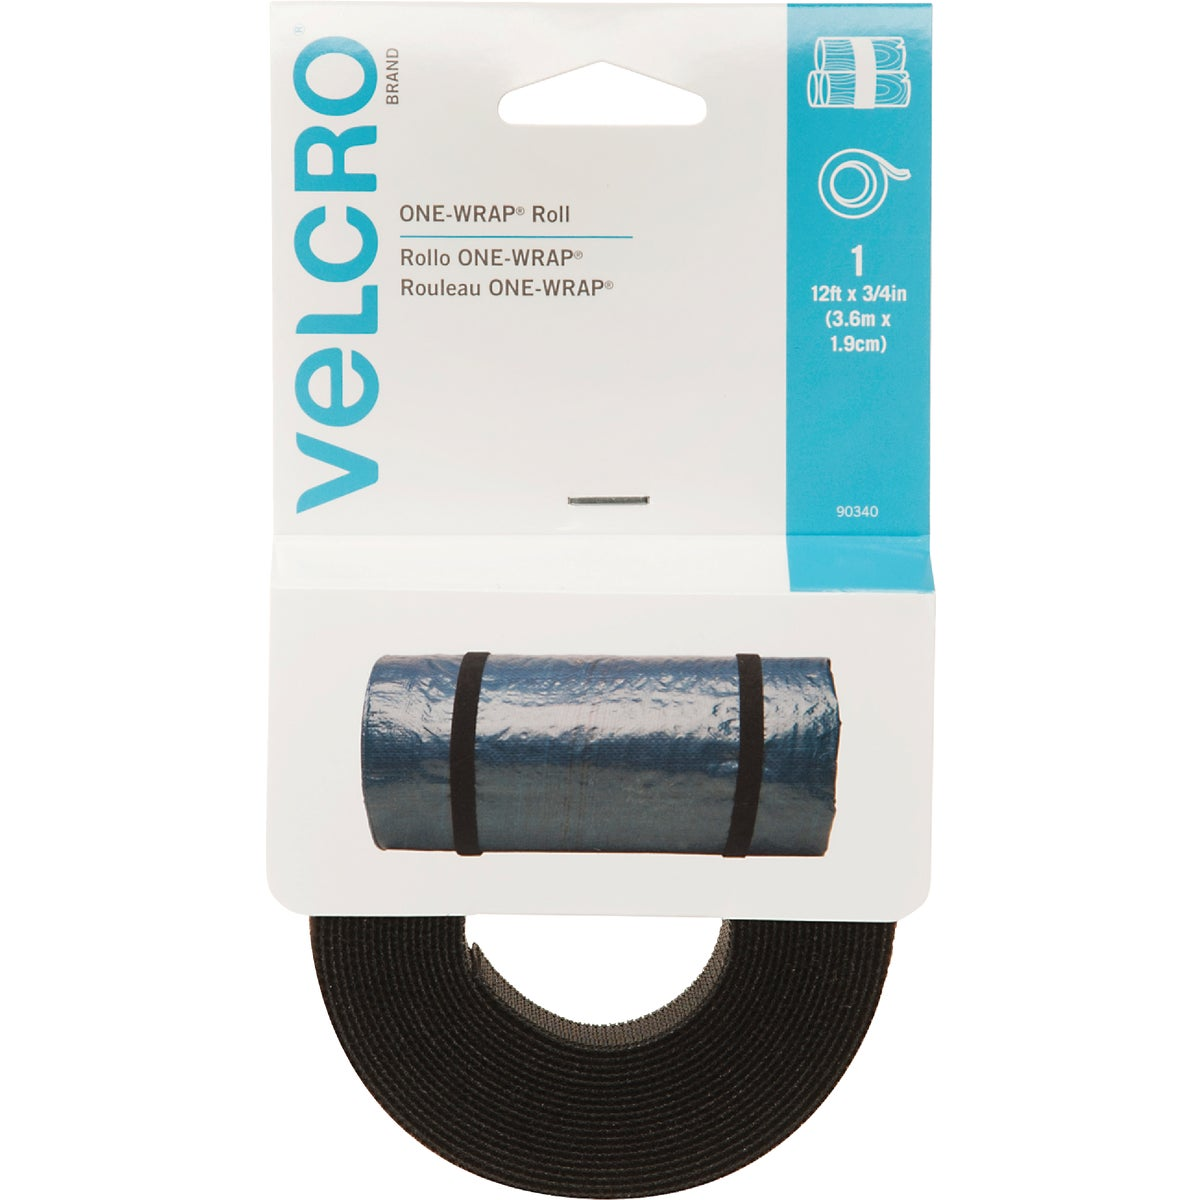 12'BLK ADHESIVE FASTENER - 90340 by Velcro Usa